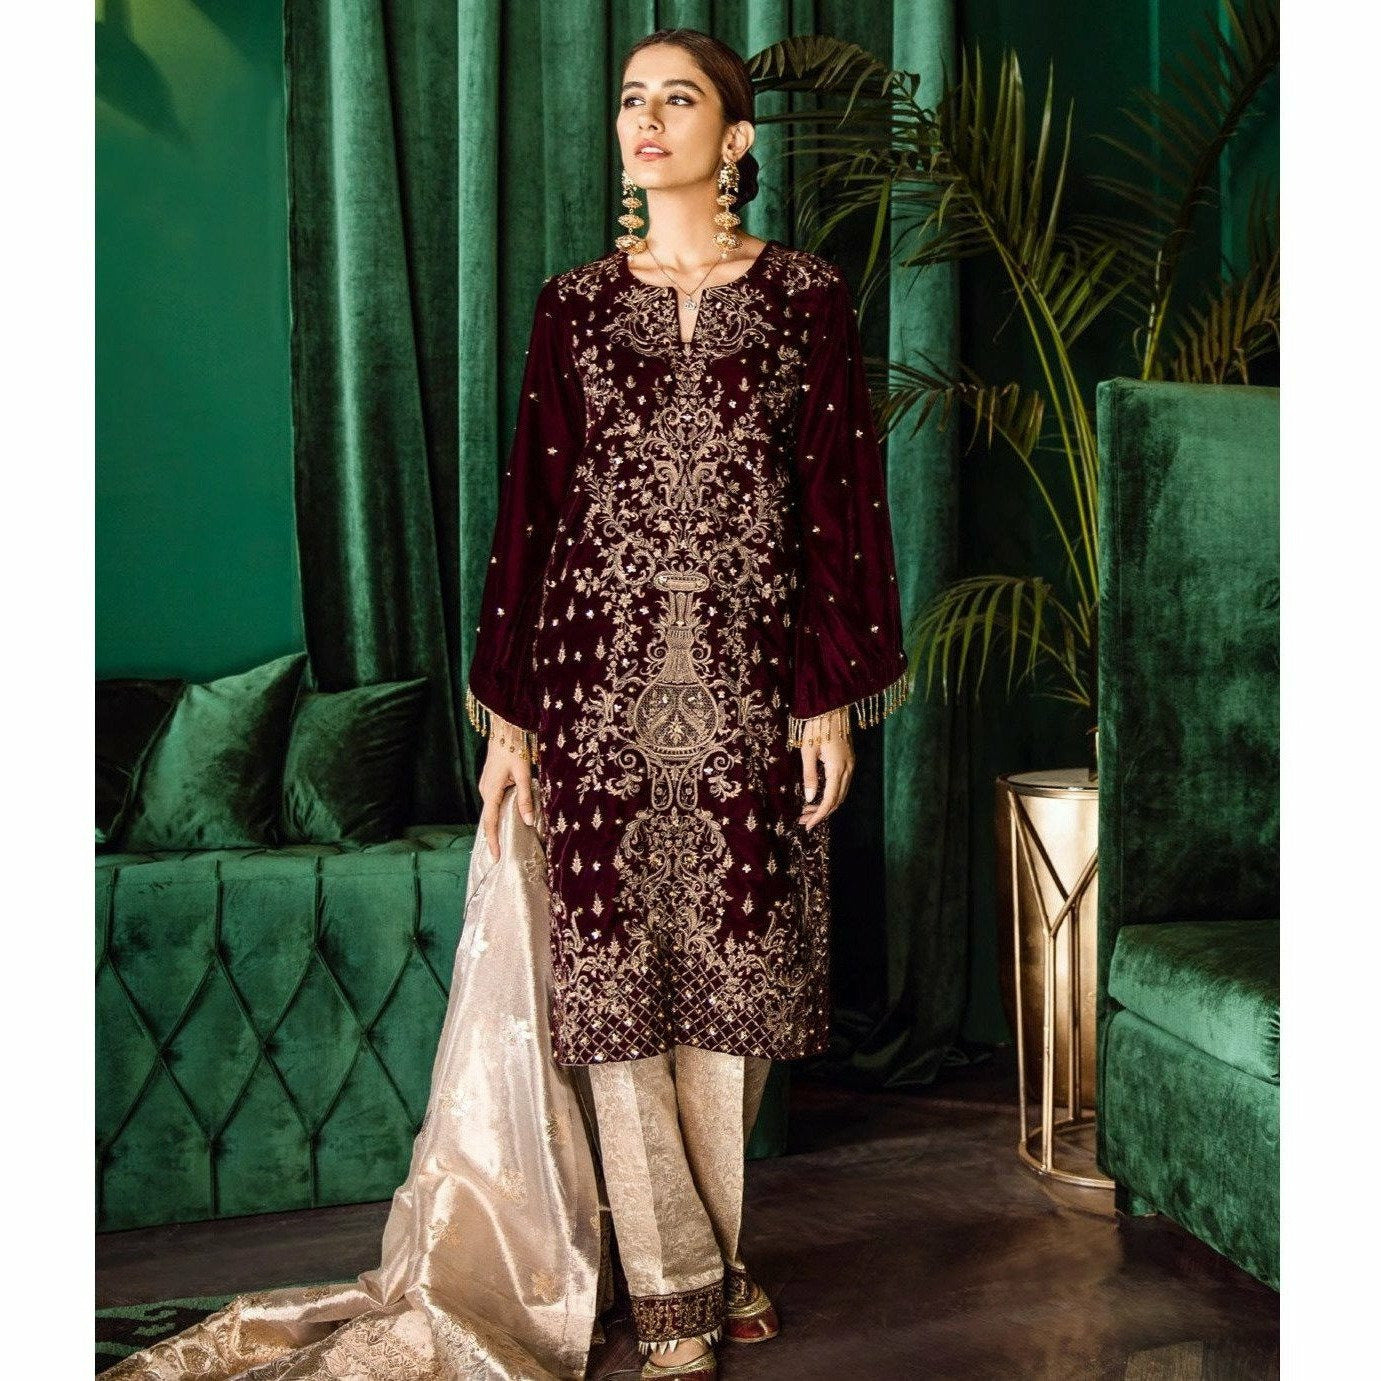 Iznik | Festive Velvet 19 | Vogue 11 - House of Faiza